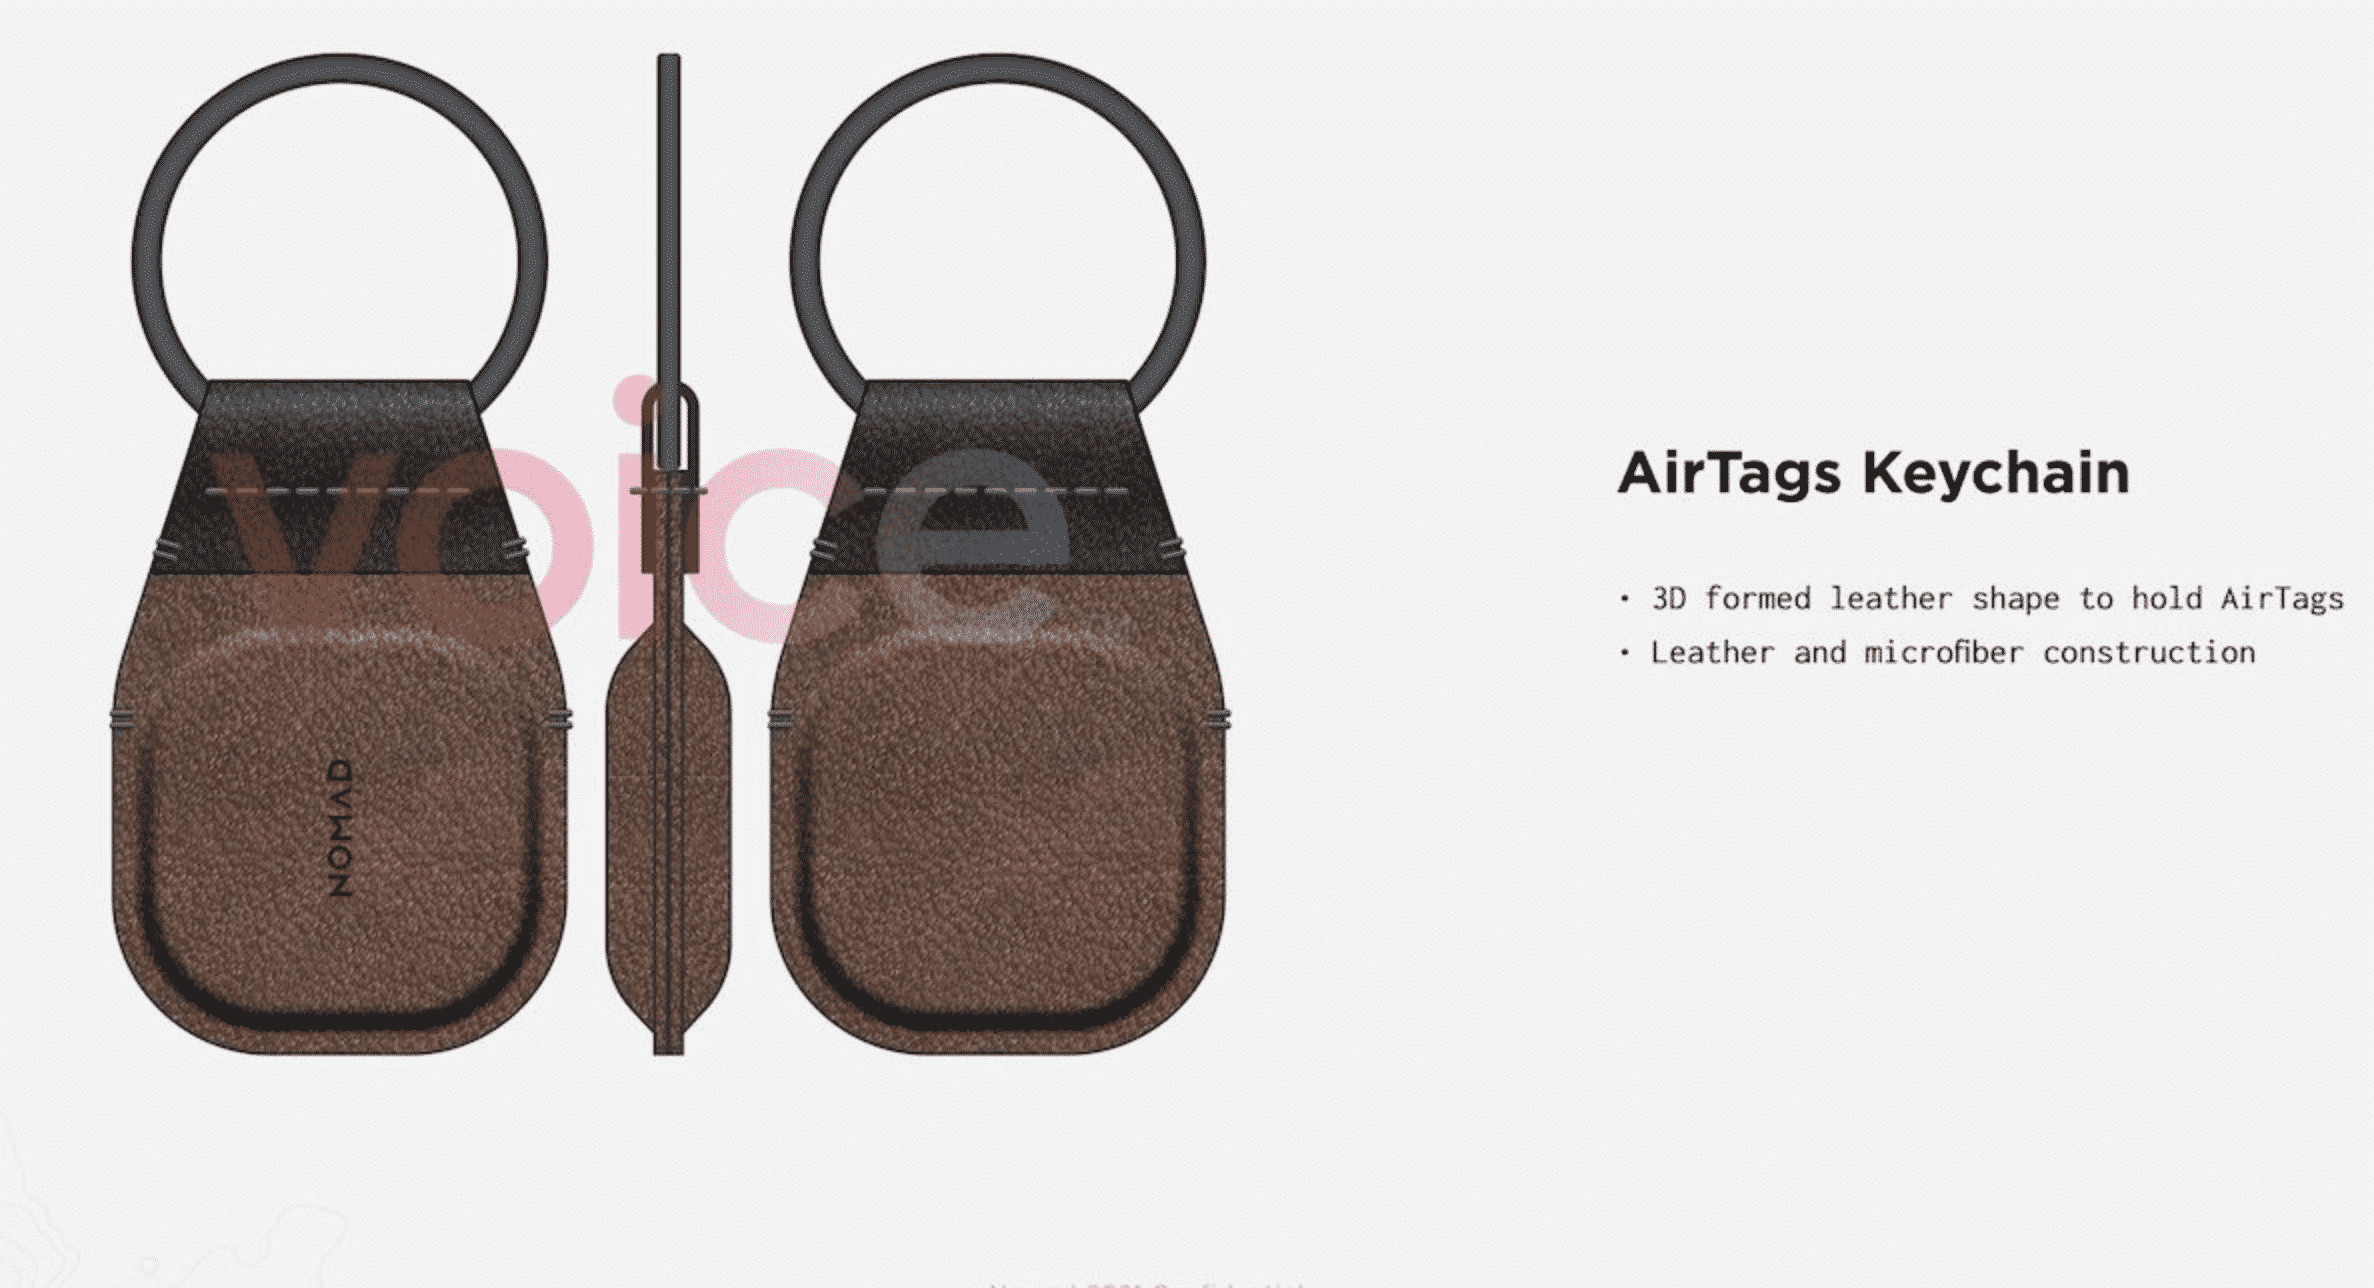 Nomad begins making AirTags accessories